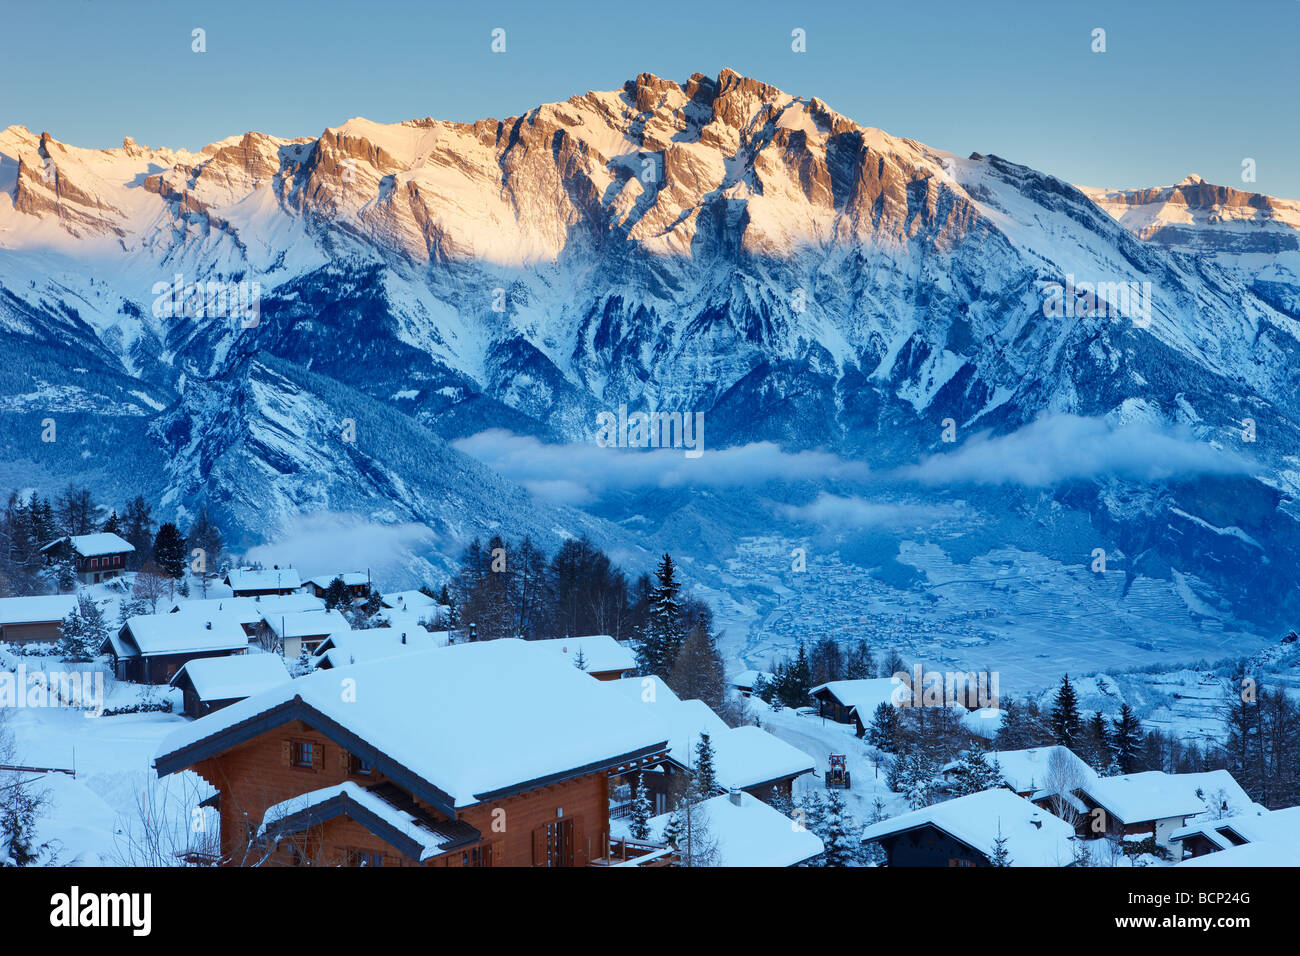 a fresh snowfall on the alpine village of La Tzoumas at dawn, with Iserables and Rhone Valley beyond, Valais Region, - Stock Image